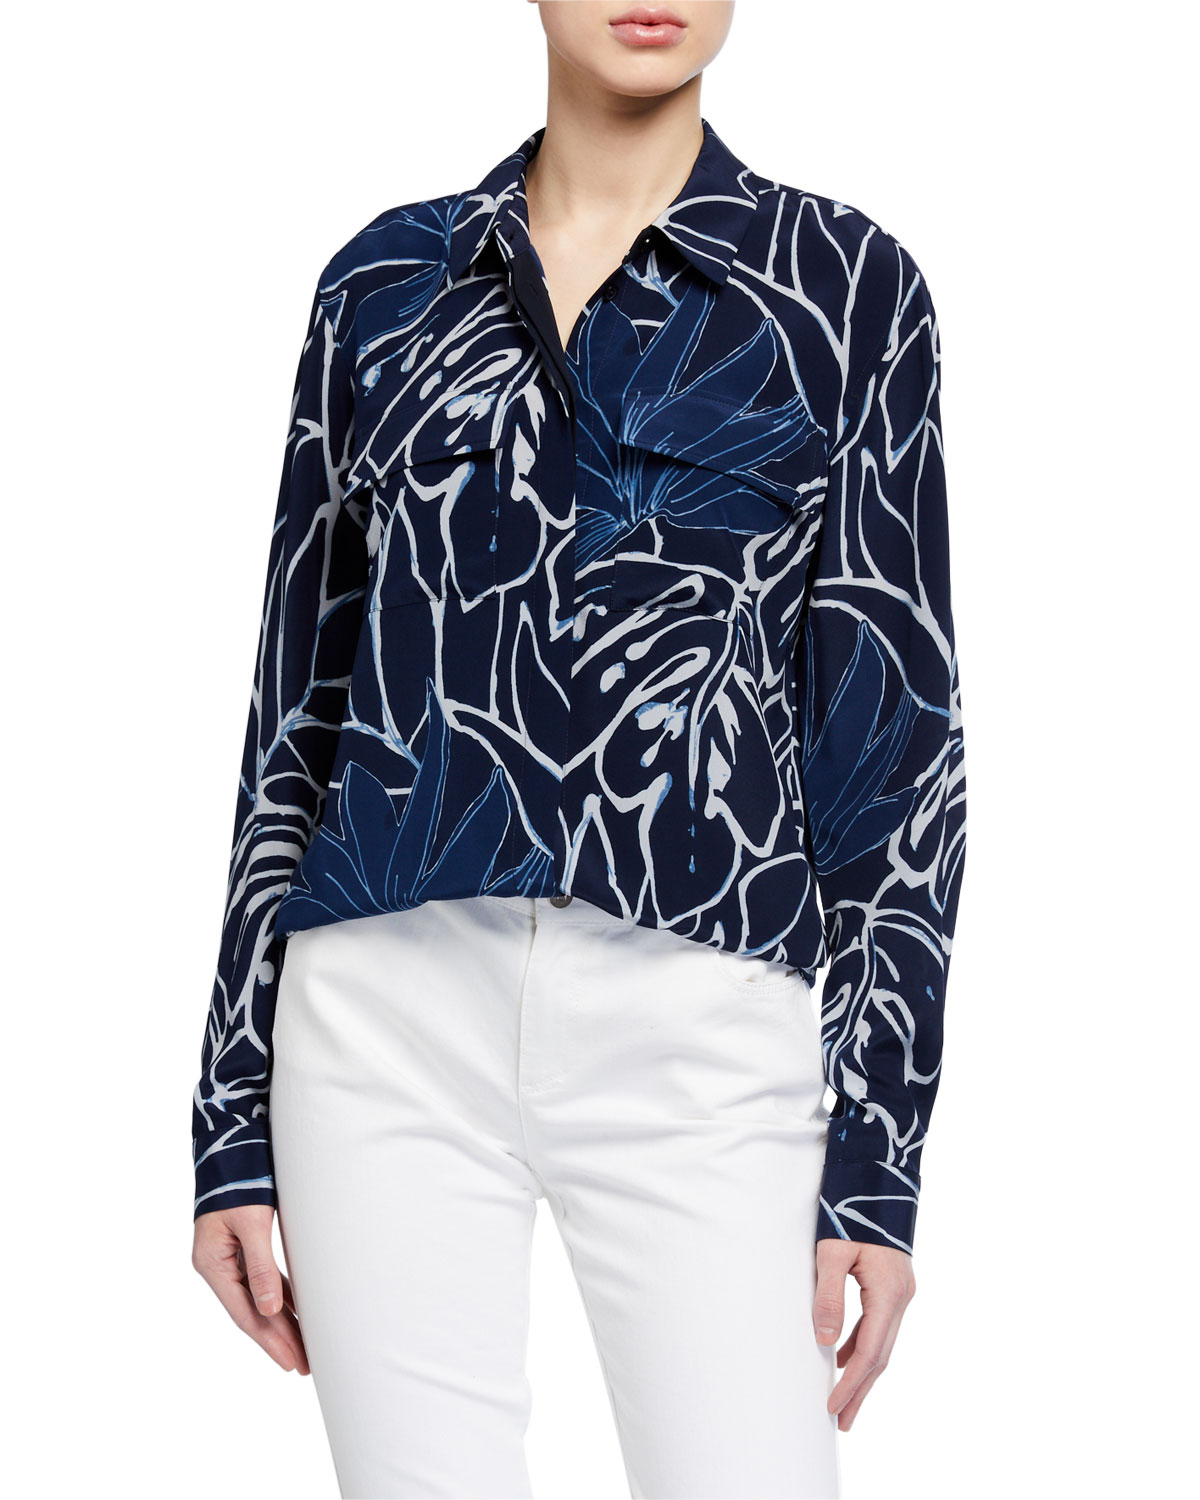 Lafayette 148 Tops AURORA ZORA REVERSE PORCELAIN PRINT BUTTON-DOWN SILK SHIRT